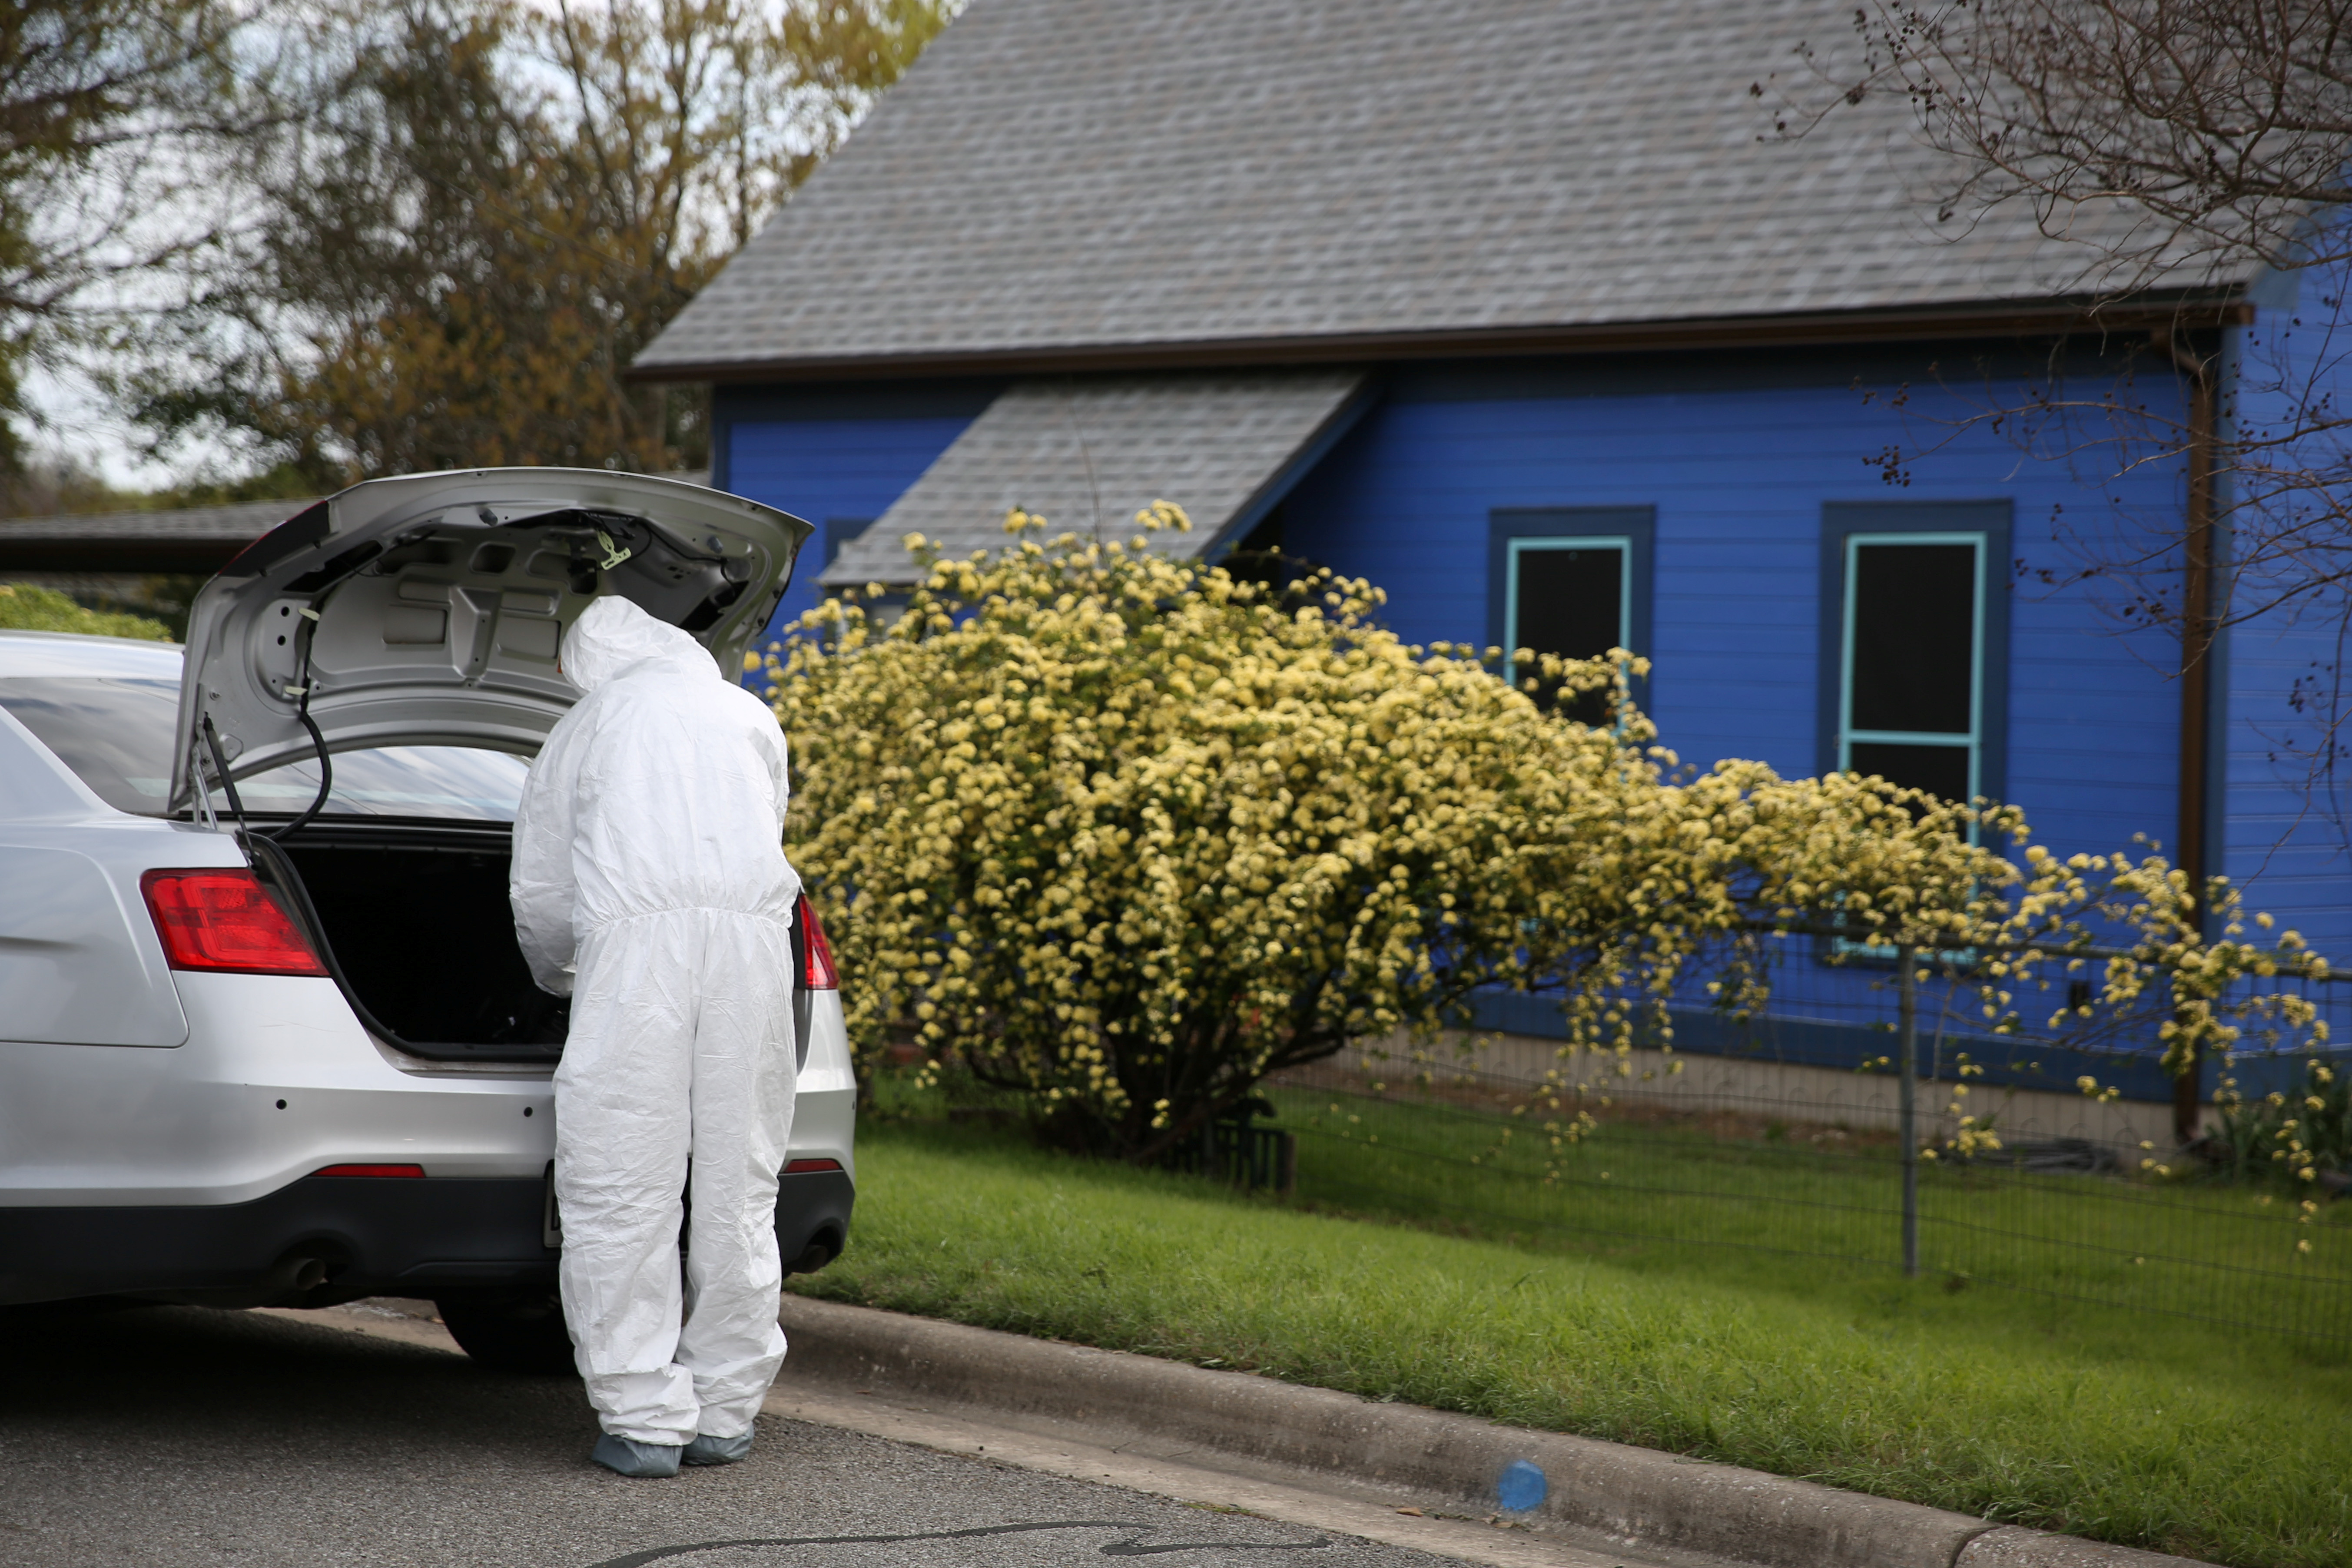 A law enforcement member is seen down the street from the home where Austin serial bomber Mark Anthony Conditt lived in Pflugerville, Texas, U.S., March 22, 2018. REUTERS/Loren Elliott